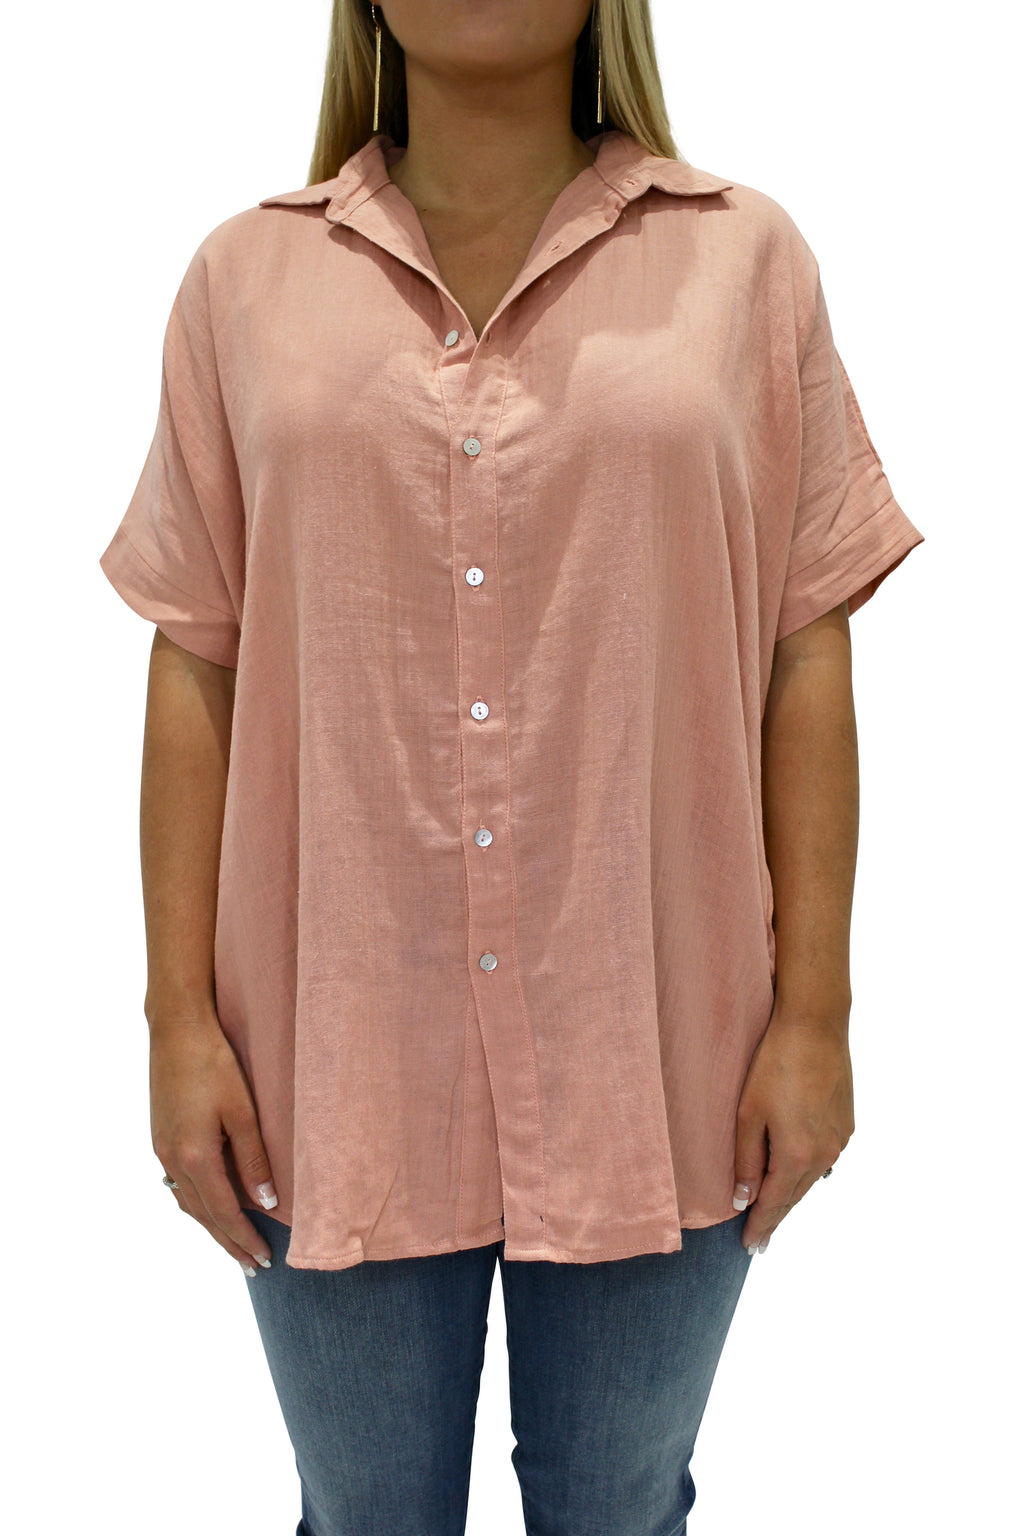 ACACIA Mombasa Button Up | Pink Lemonade